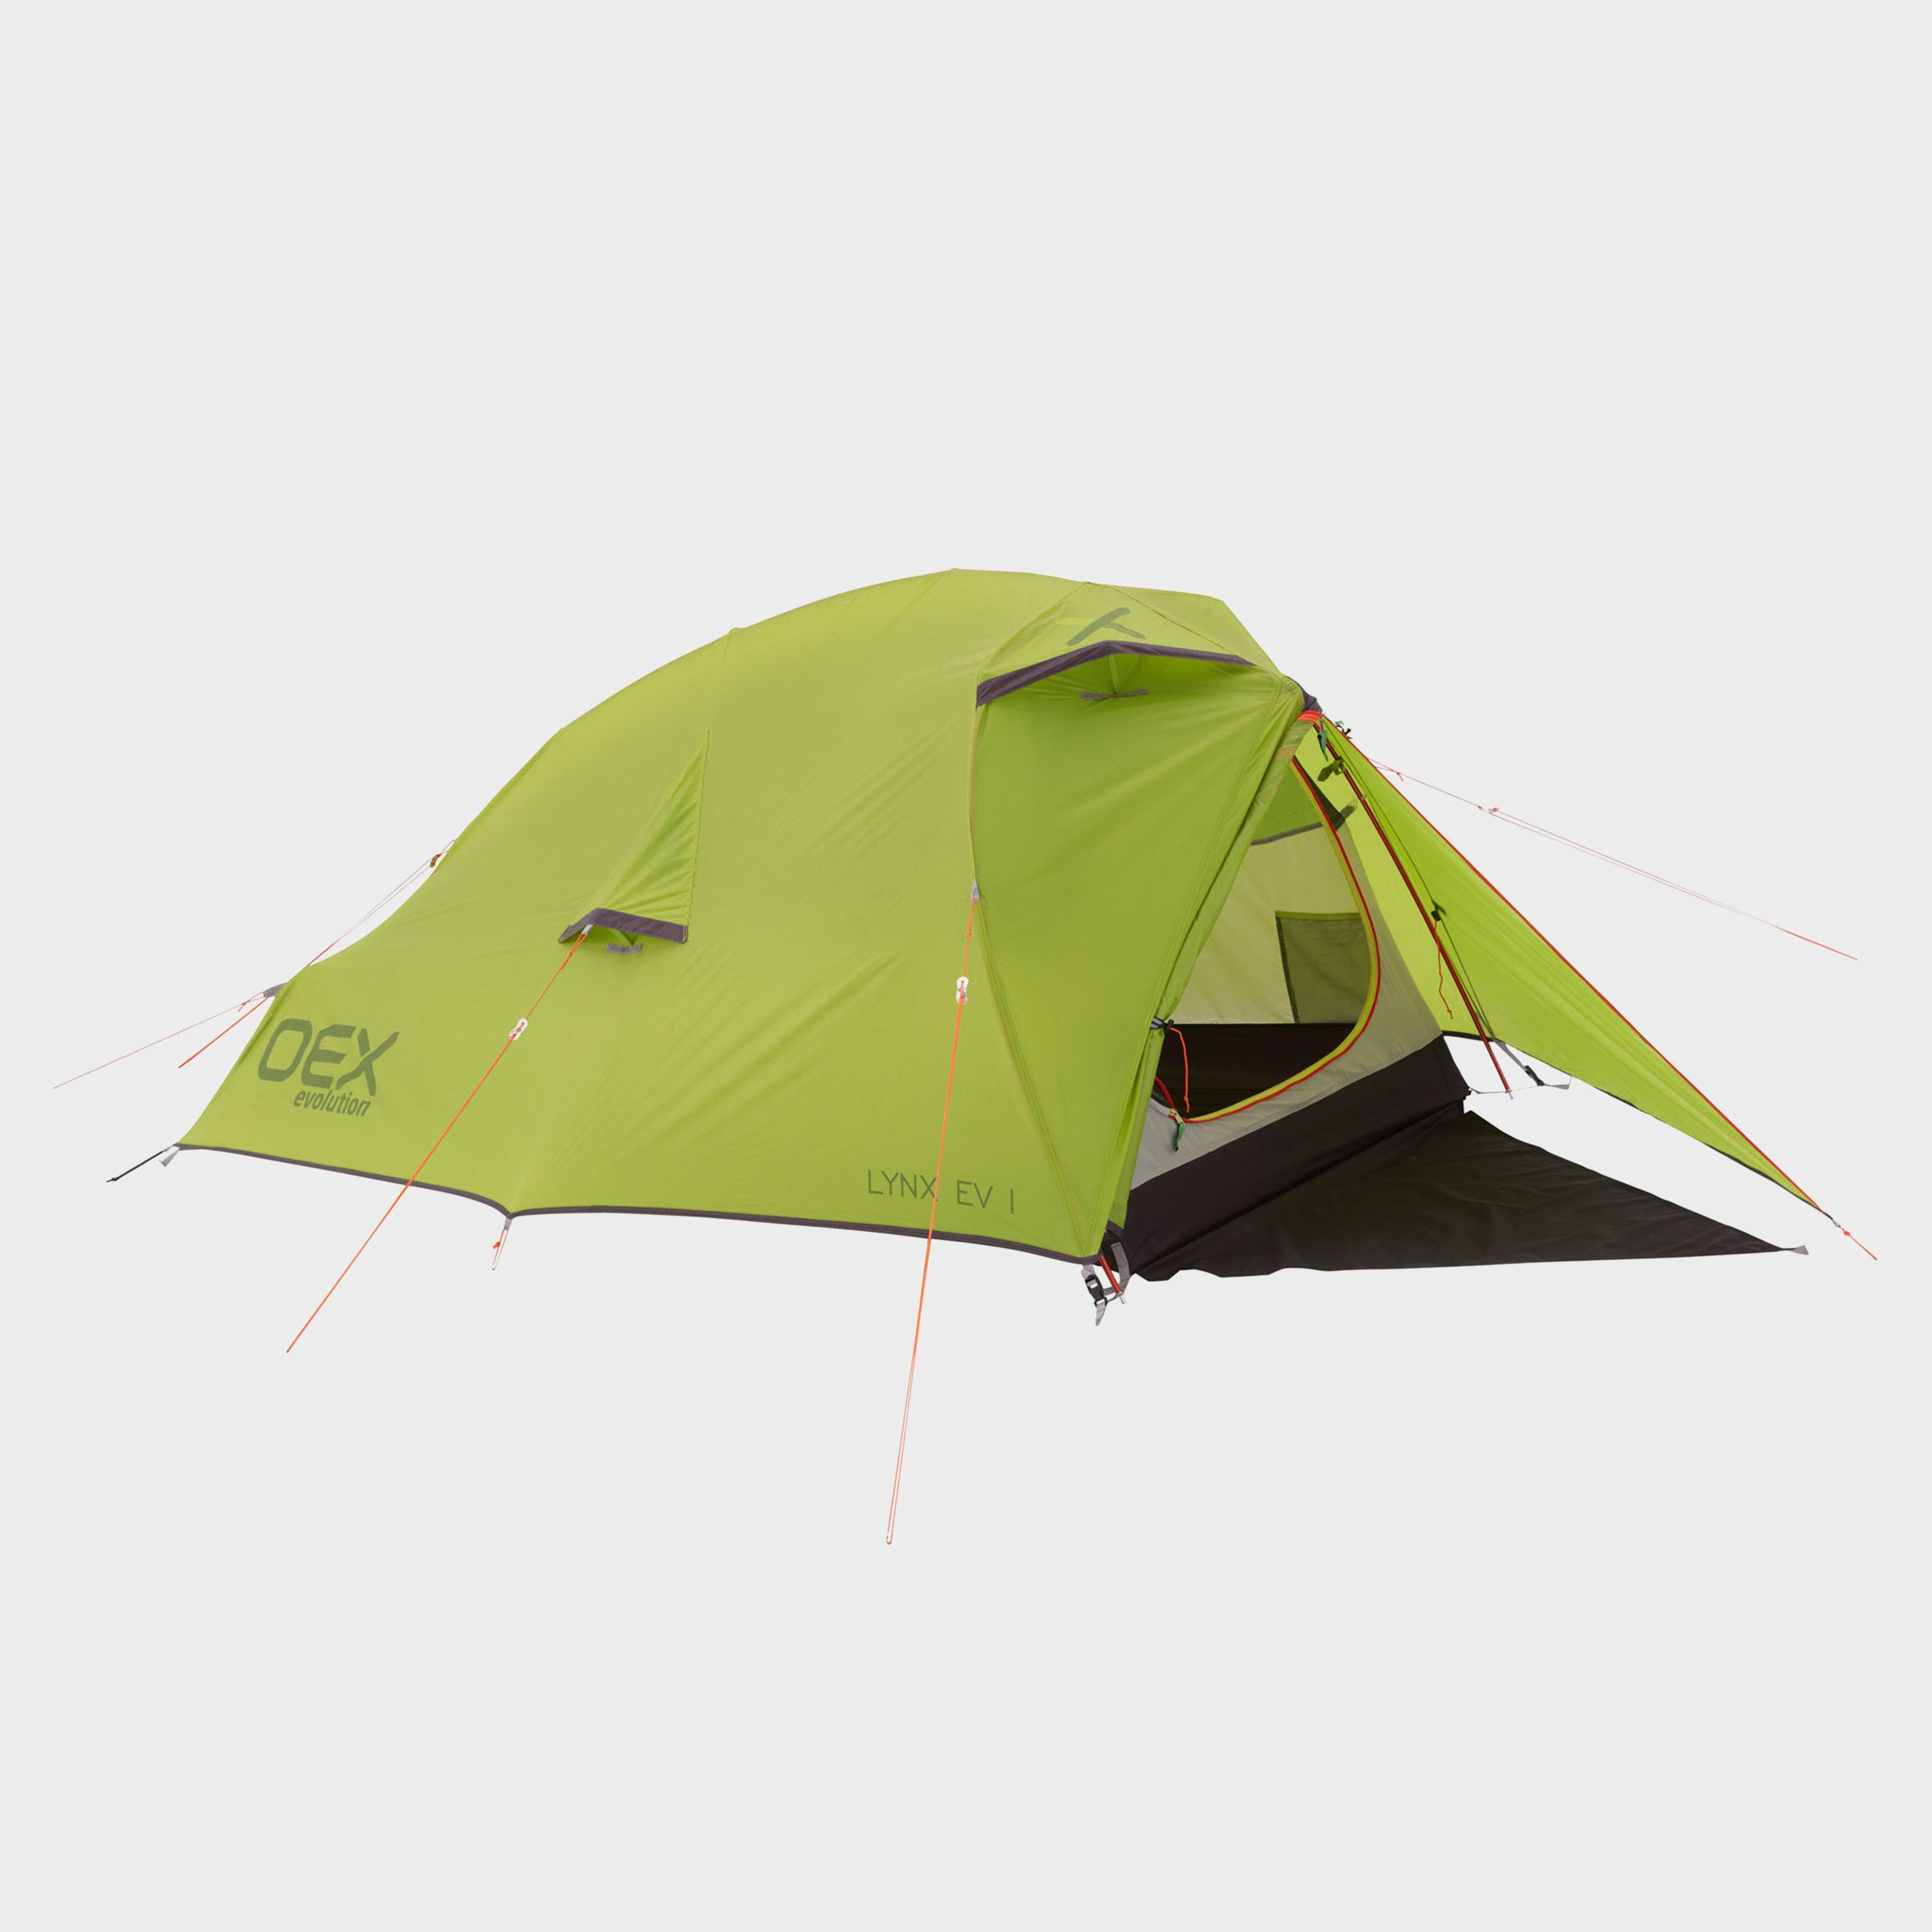 Oex Oex Lynx EV I 1 Person Backpacking Tent